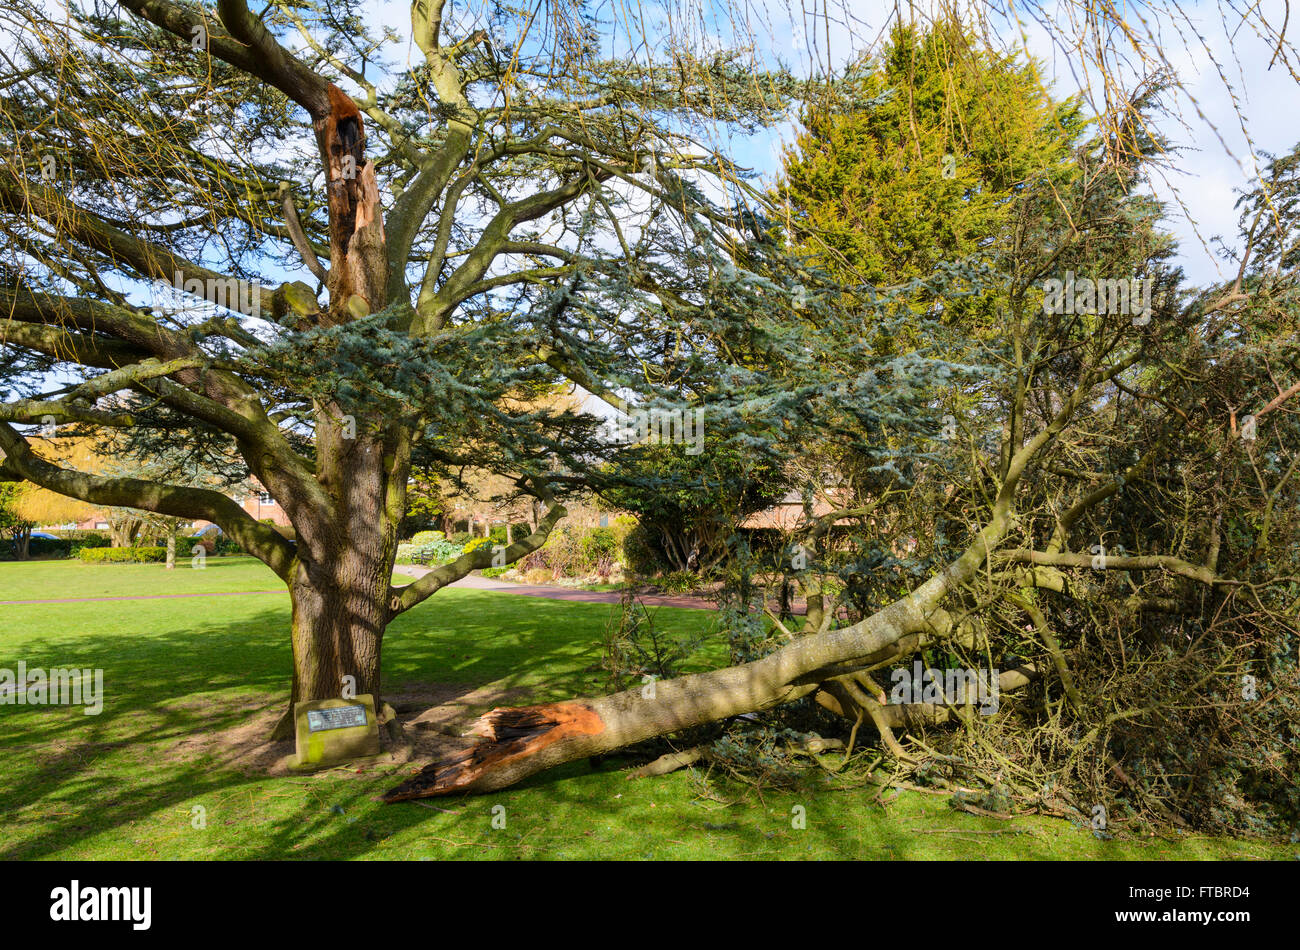 Branch of a tree broken off from the main trunk during gales in West Sussex, England, UK. - Stock Image